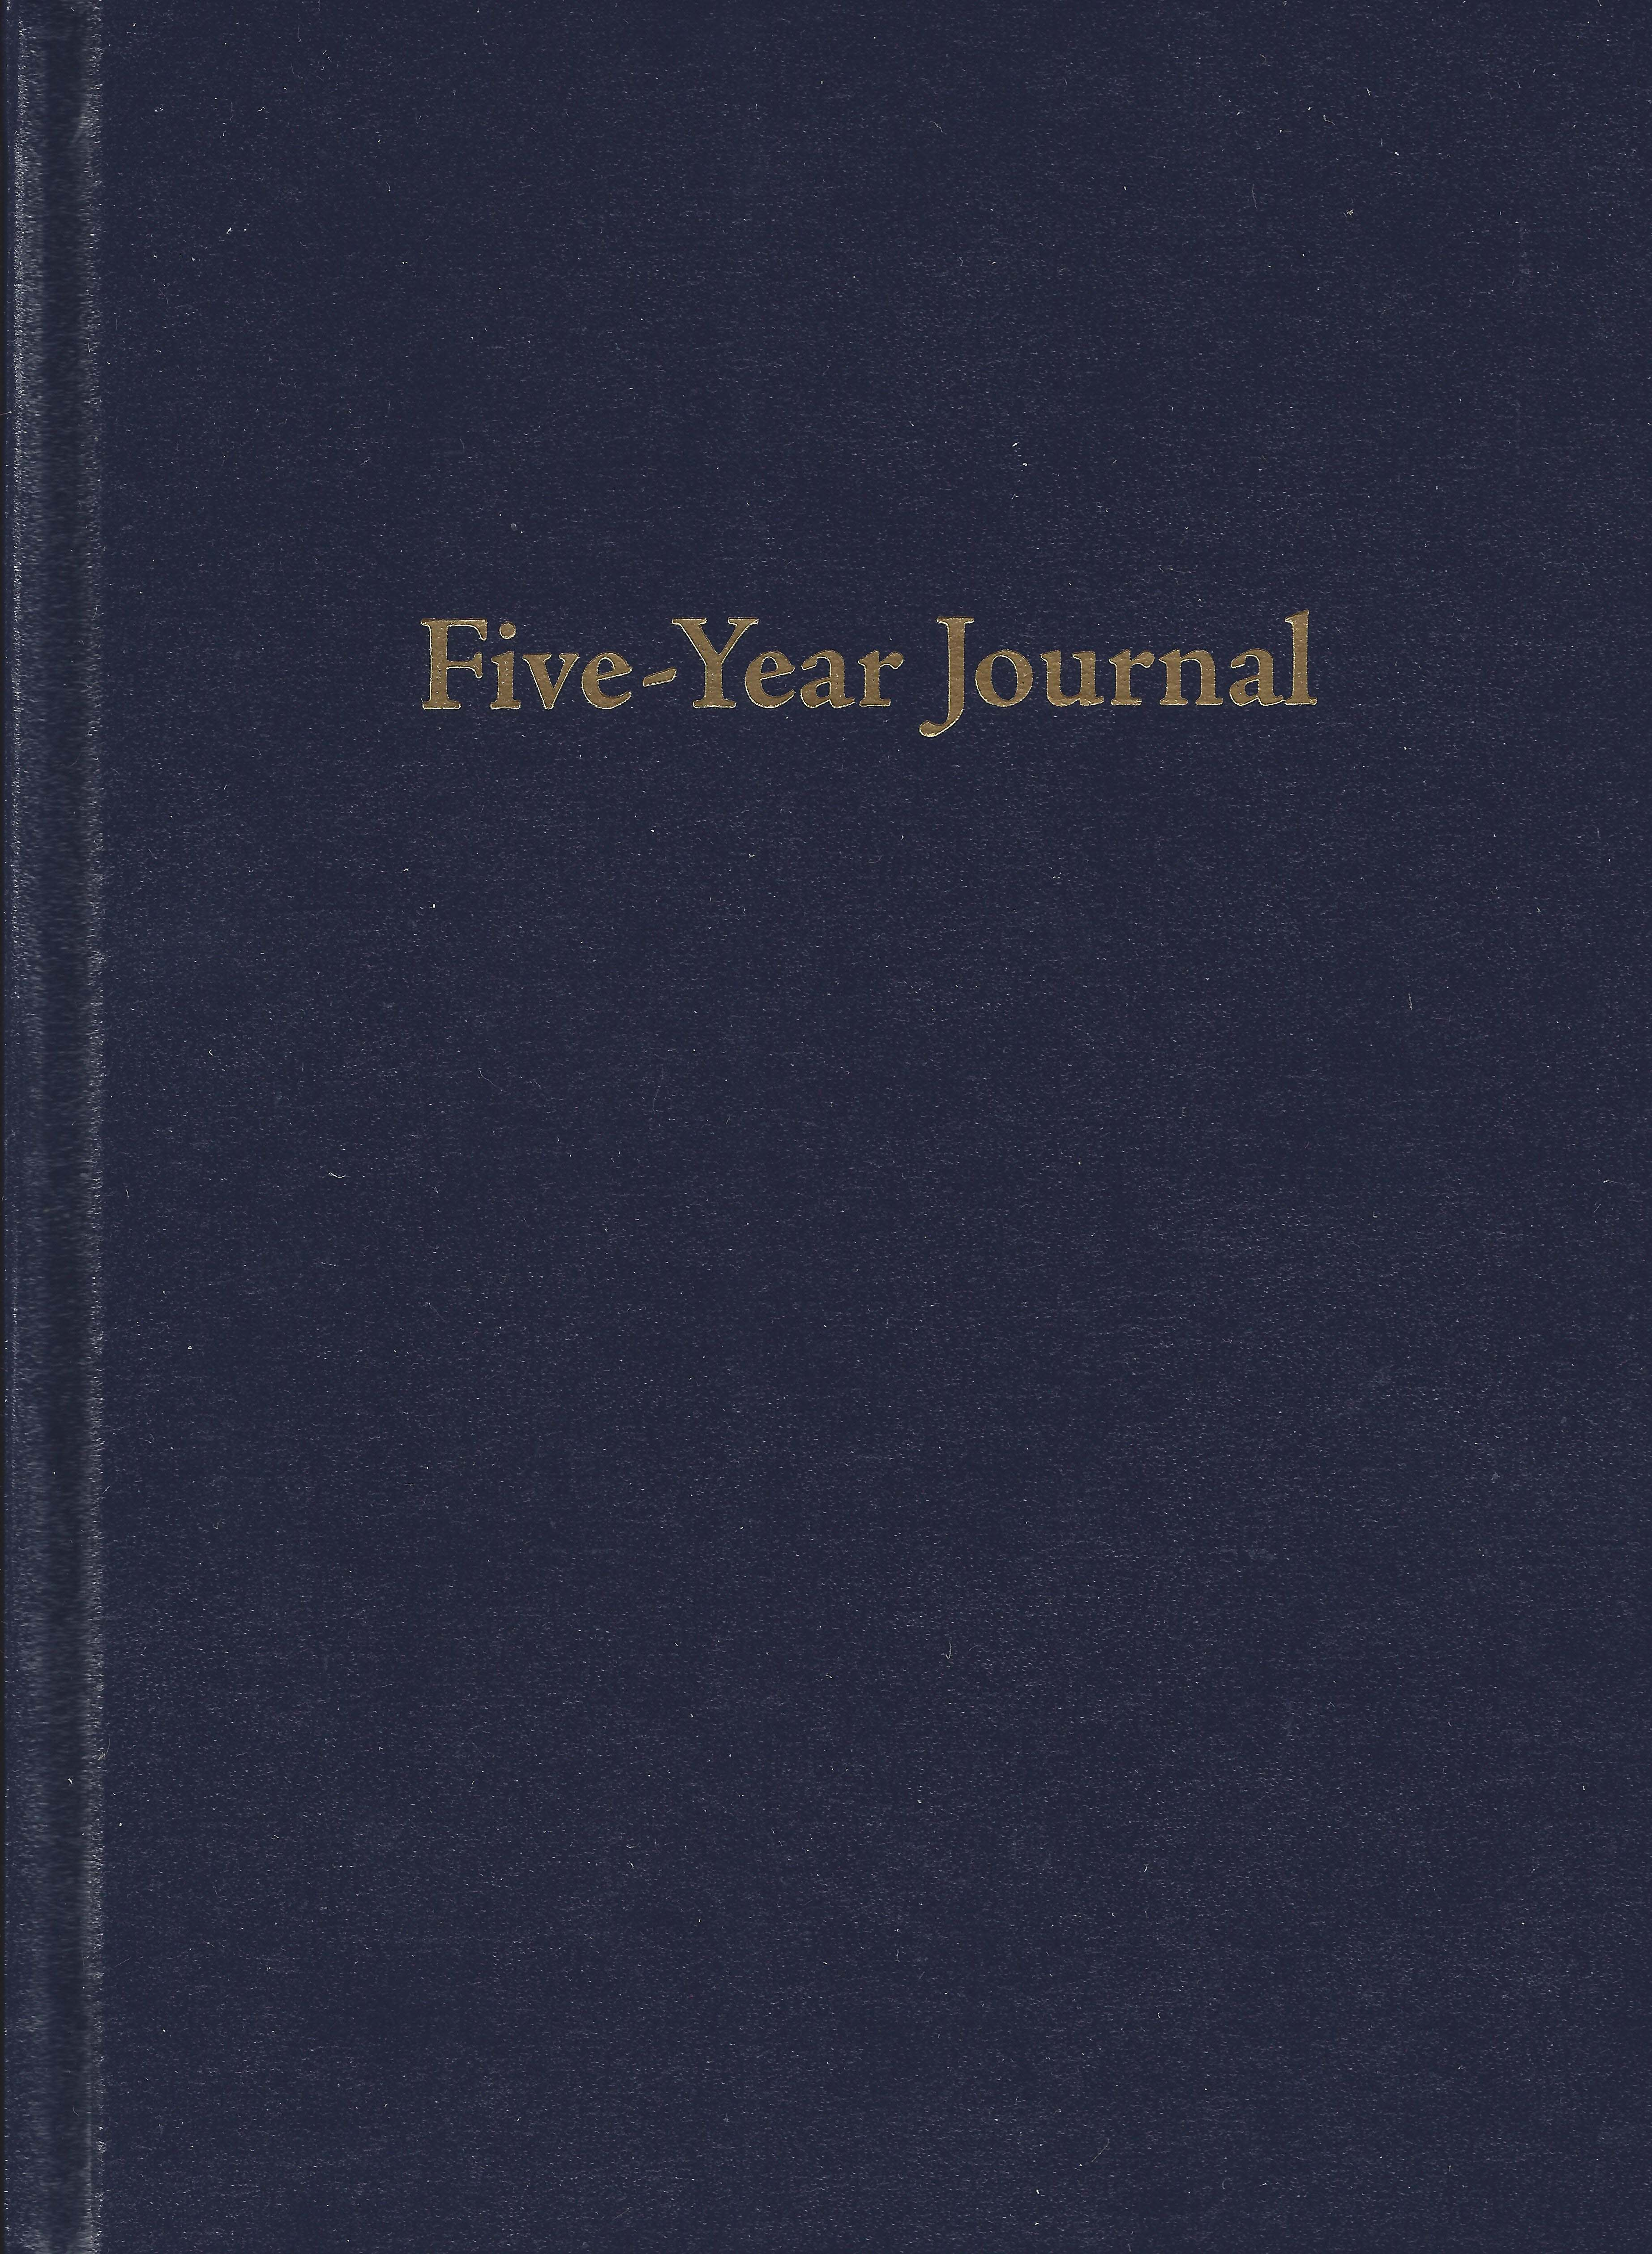 Try Keeping a Five-Year Journal for a Week